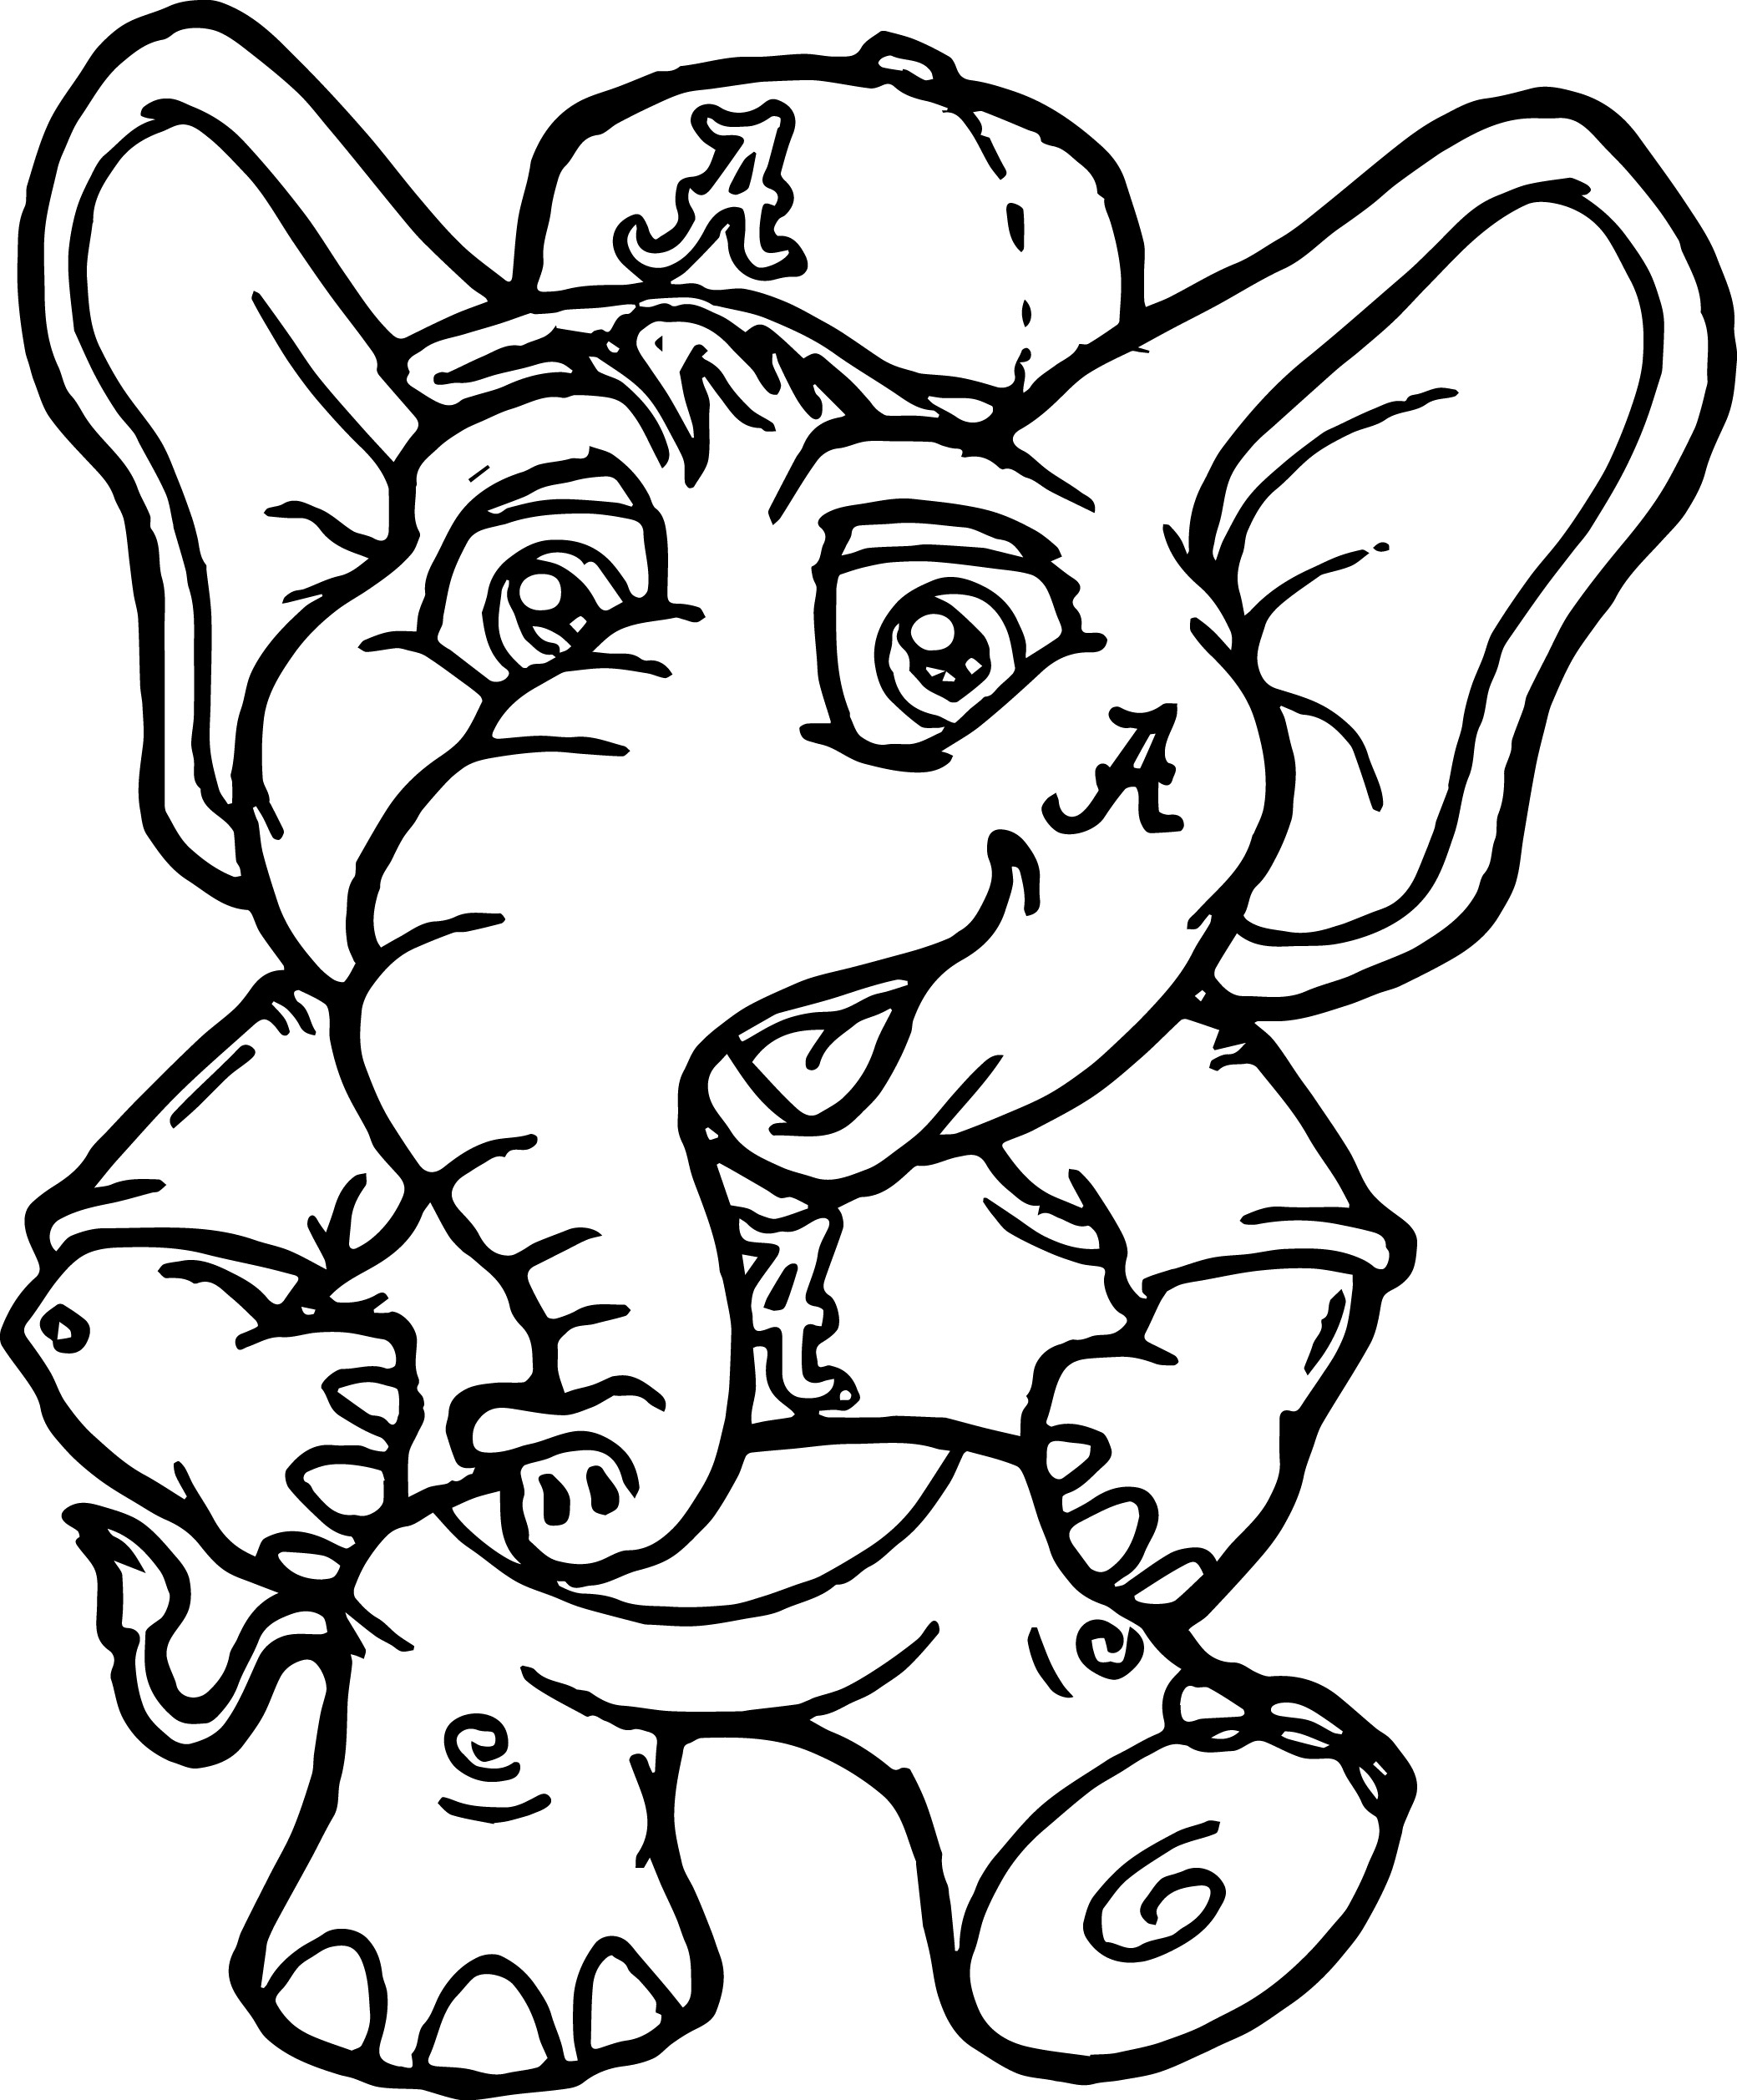 2080x2515 Football Coloring Book Printable Coloring Pages For Kids